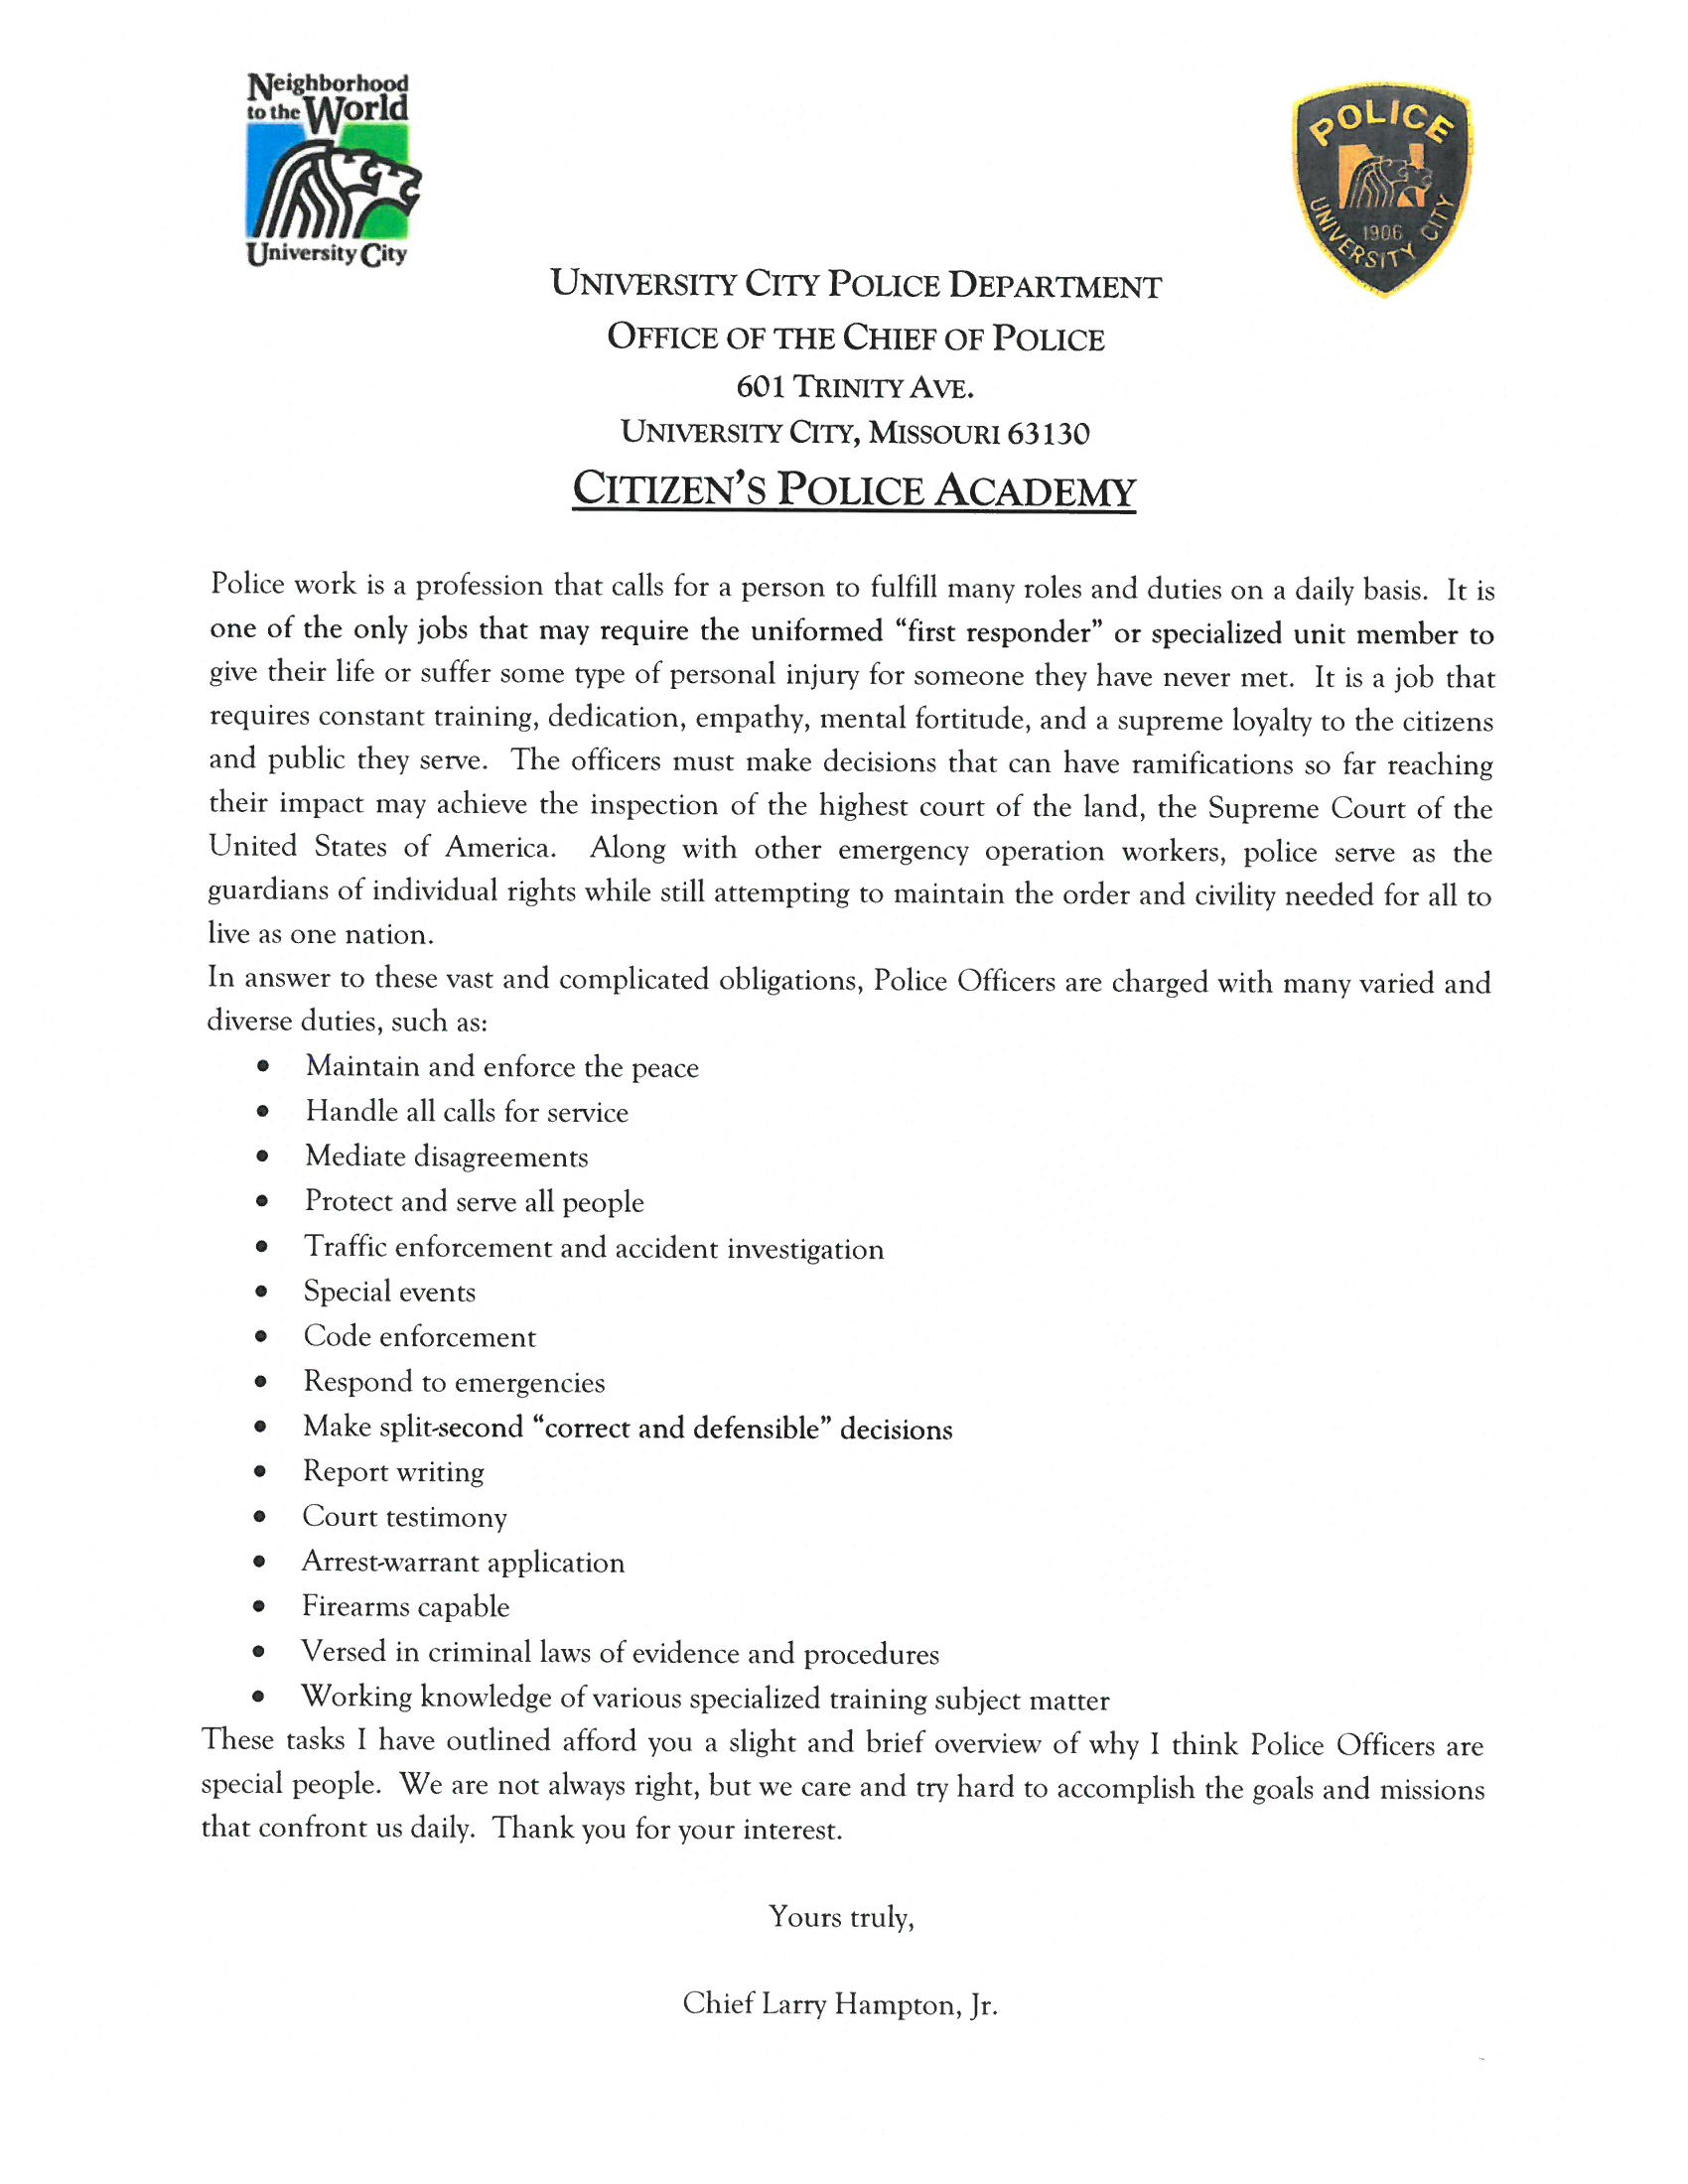 CitizensPoliceAcademy letter